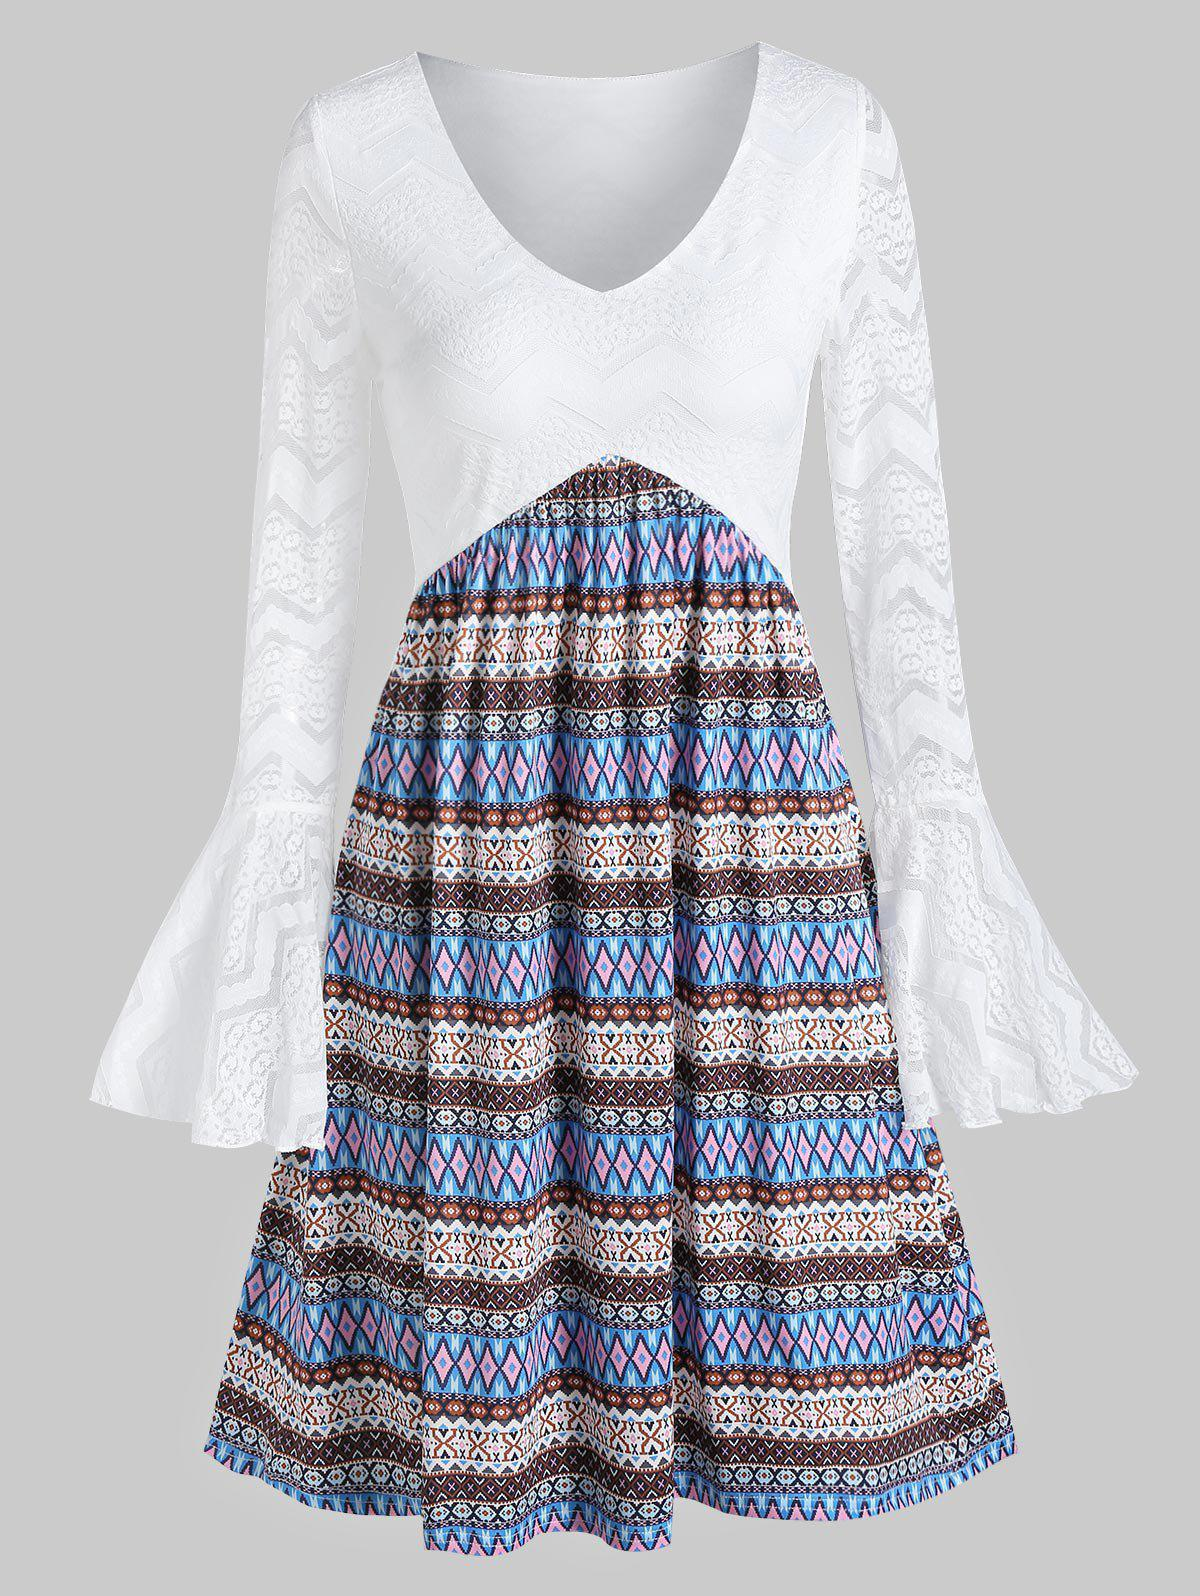 Flare Sleeve Lace Tribal Print Dress - WHITE 3XL